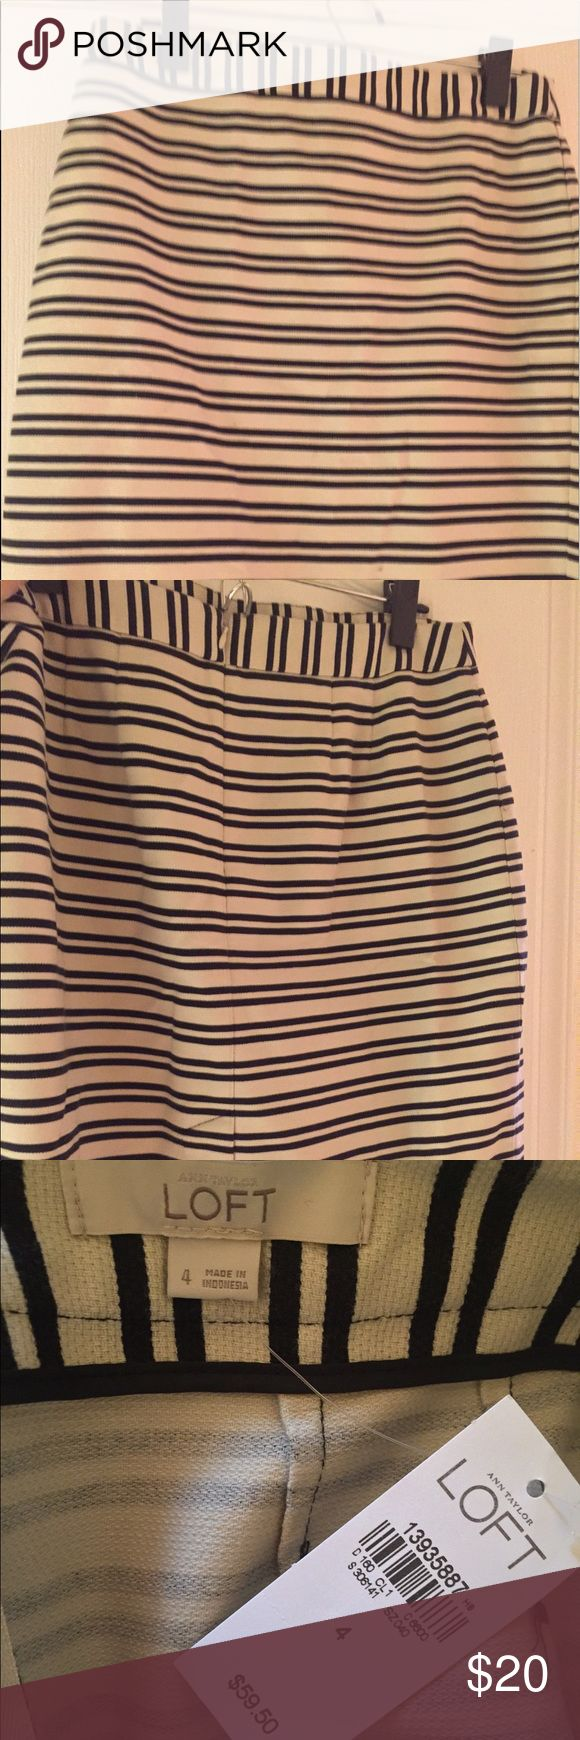 Ann Taylor Loft Navy Striped Skirt - Size 4 New with tags! Skirt from Ann Taylor Loft.  The stripes are super dark navy (they almost look black)!  Size 4.  Sturdy, thick material.  98% cotton/algoden, 2% nylons LOFT Skirts